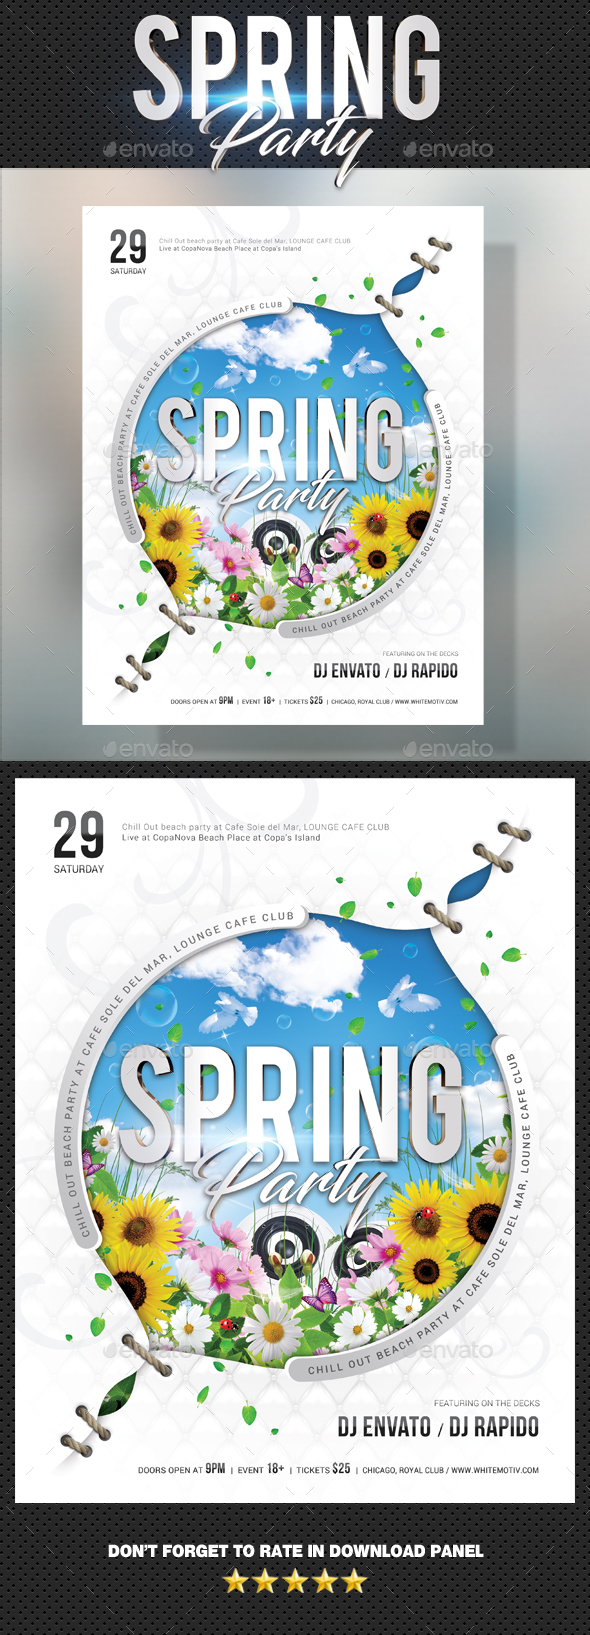 Graphicriver Spring Party Flyer 19659613